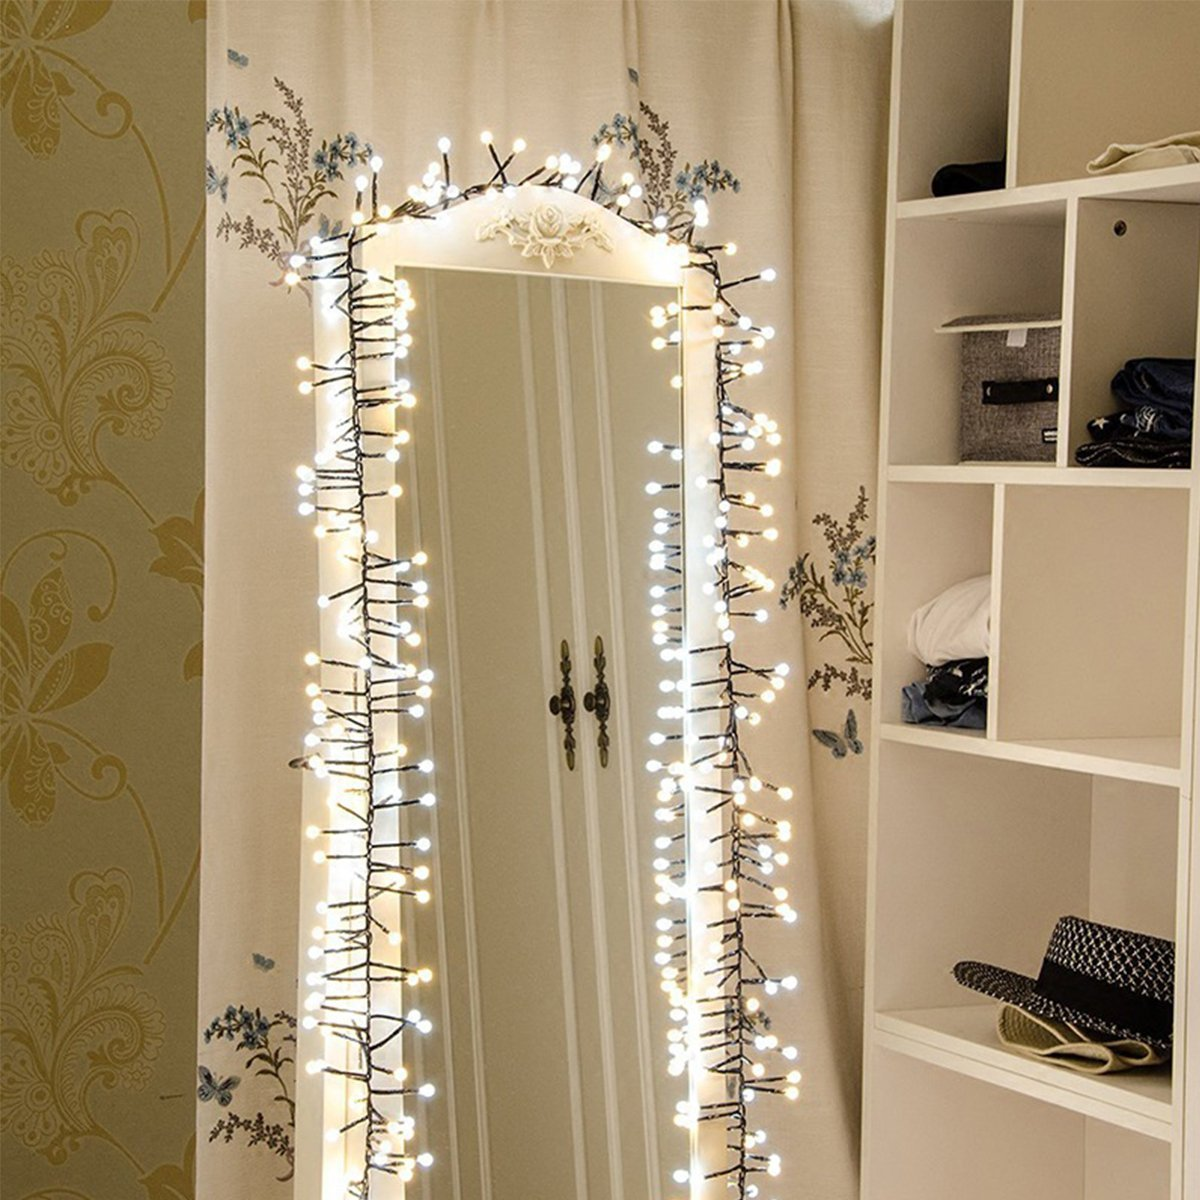 16ft 300 LED Waterproof Global Fairy String Lights - Indoor / Outdoor - Plug in 110V - Starry Light for Christmas Garland Lighting Decor Tree Partly Garden Wedding Bedroom Home Decoration (White)